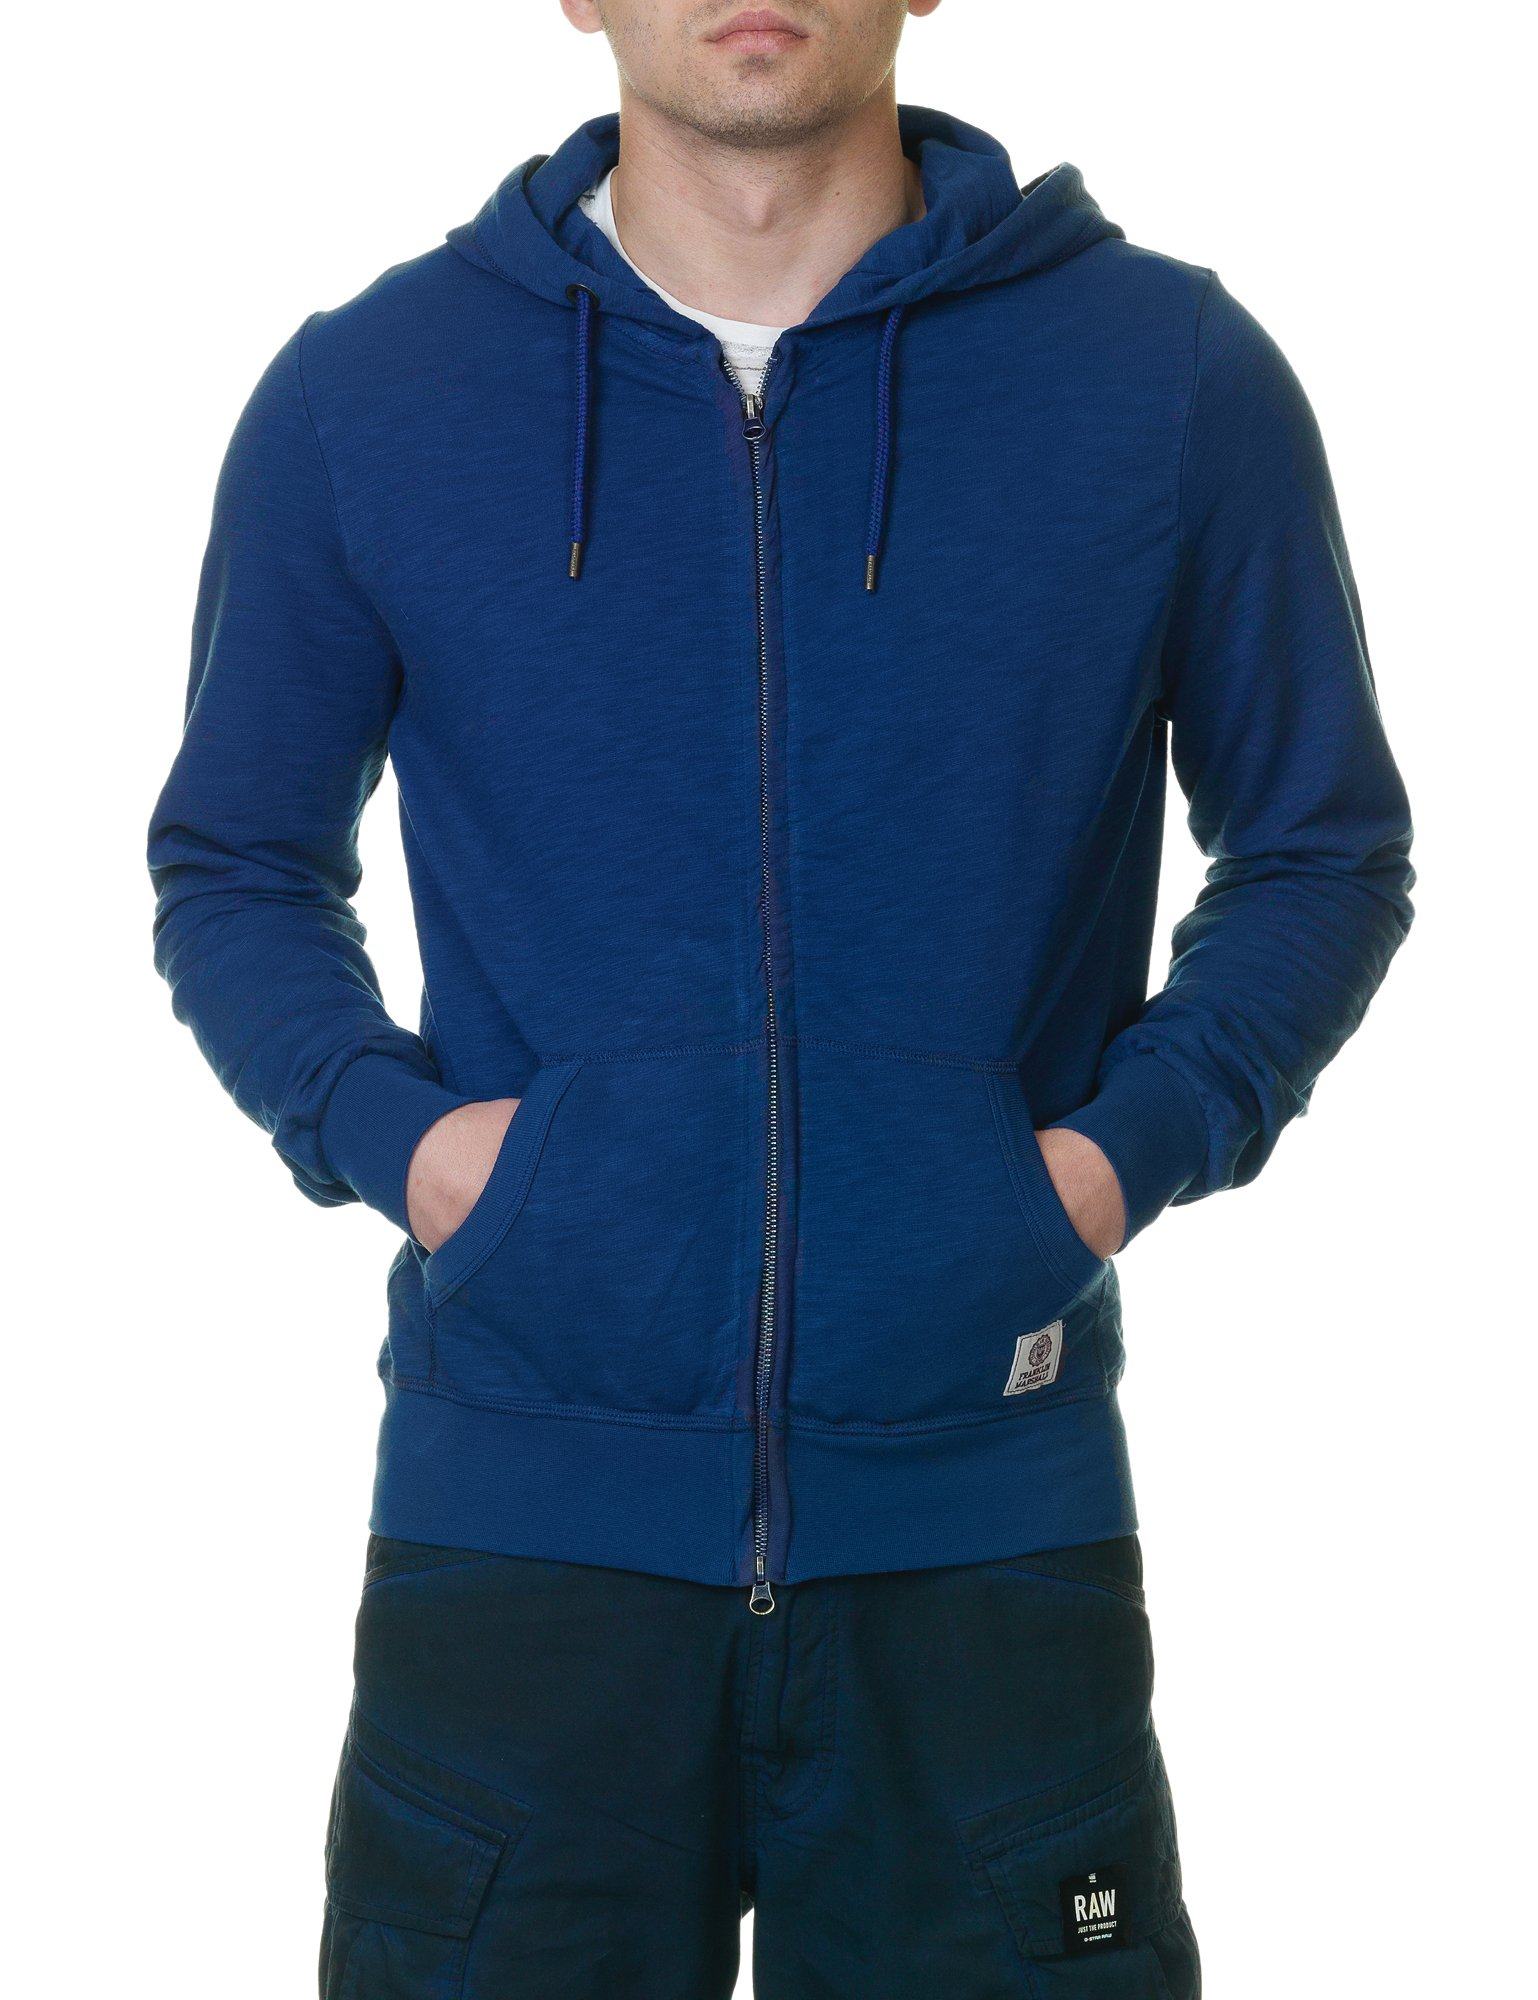 Franklin & Marshall Men's Men's Hoodie In Blue Color in Size XL Blue